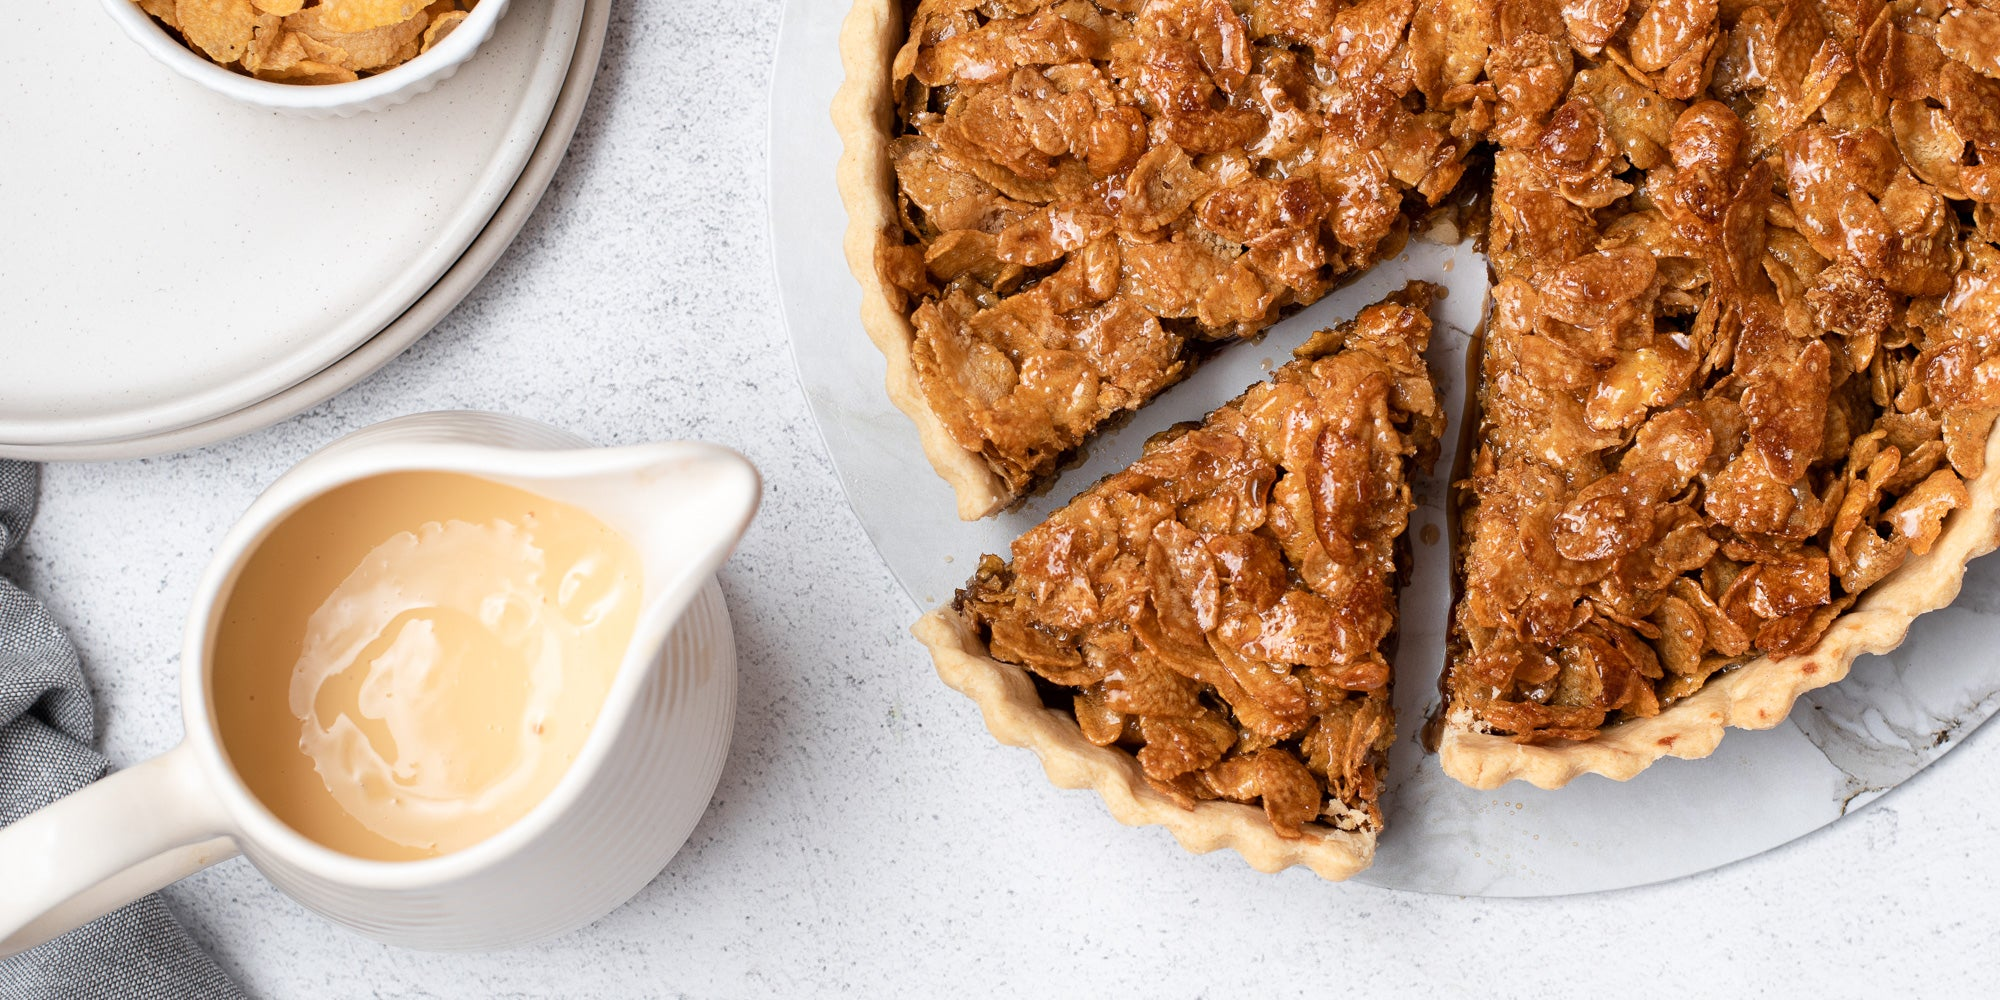 Cornflake Tart with a slice cut out, next to a jug of custard and a stack of plates